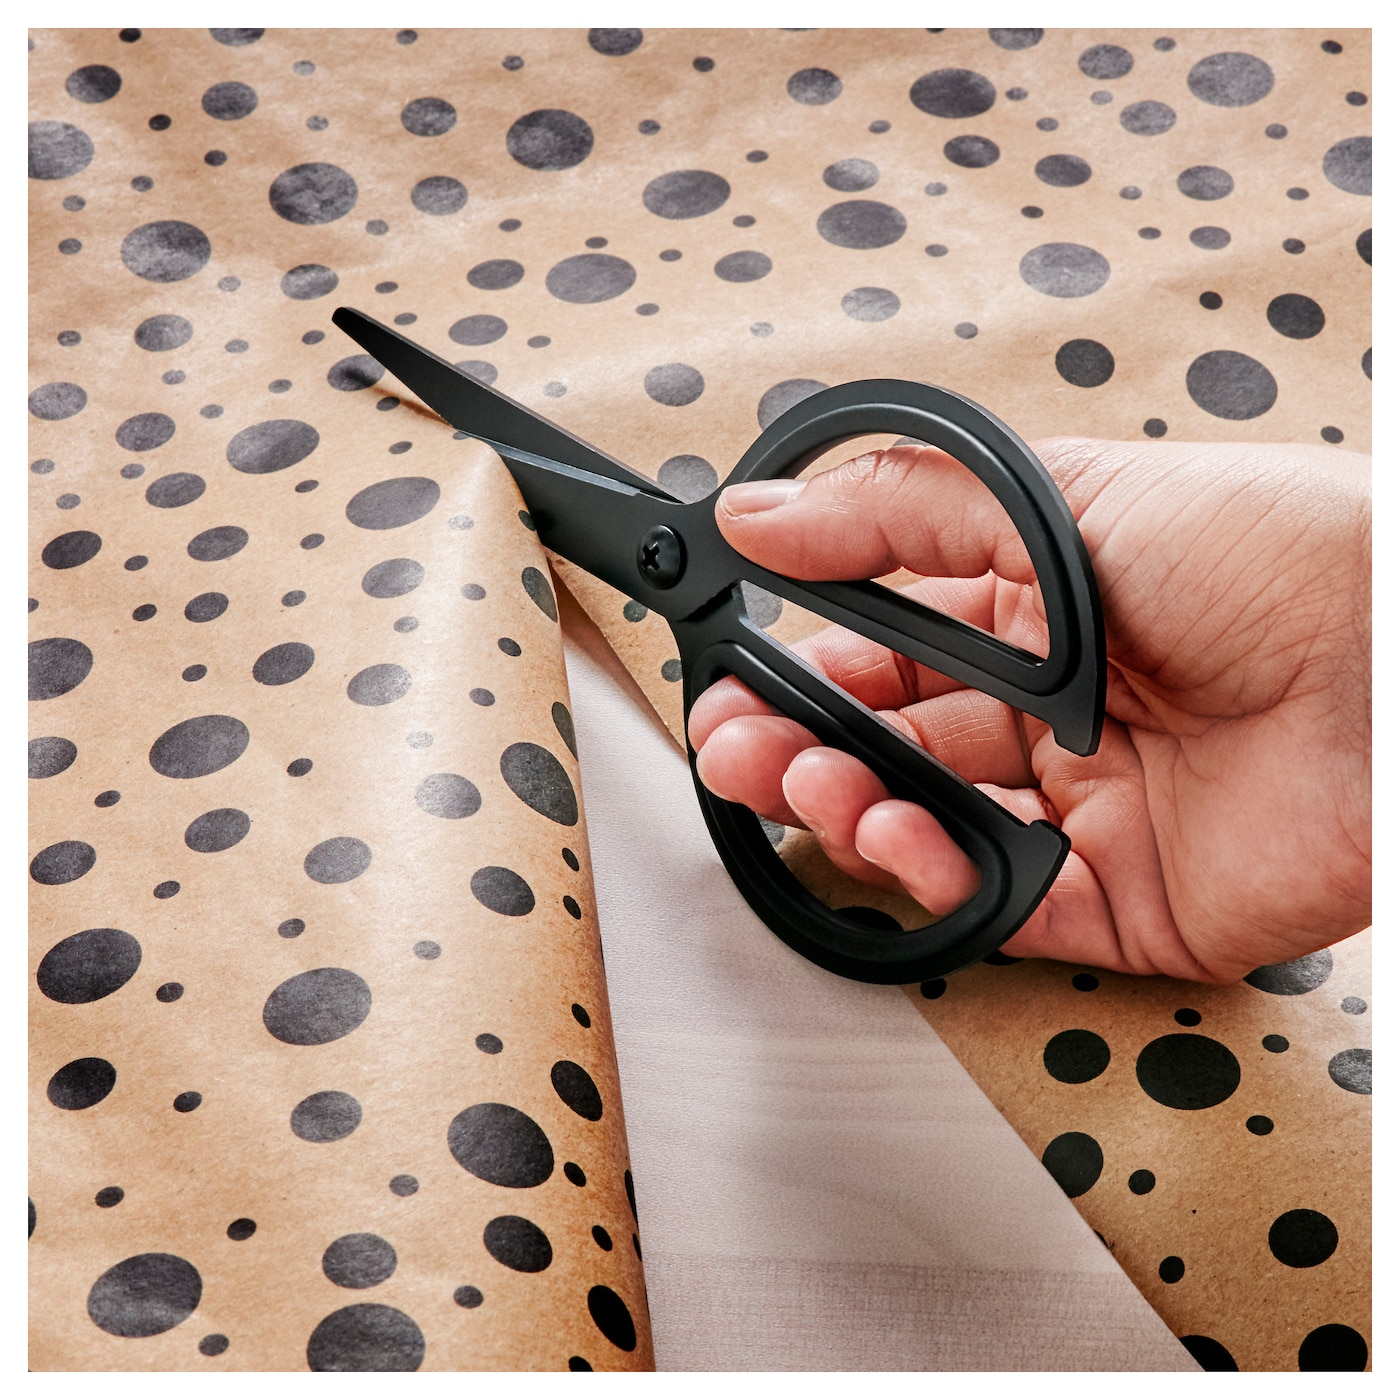 IKEA FULLFÖLJA scissors Comfortable to grip as the inside of the handle is made of soft rubber.